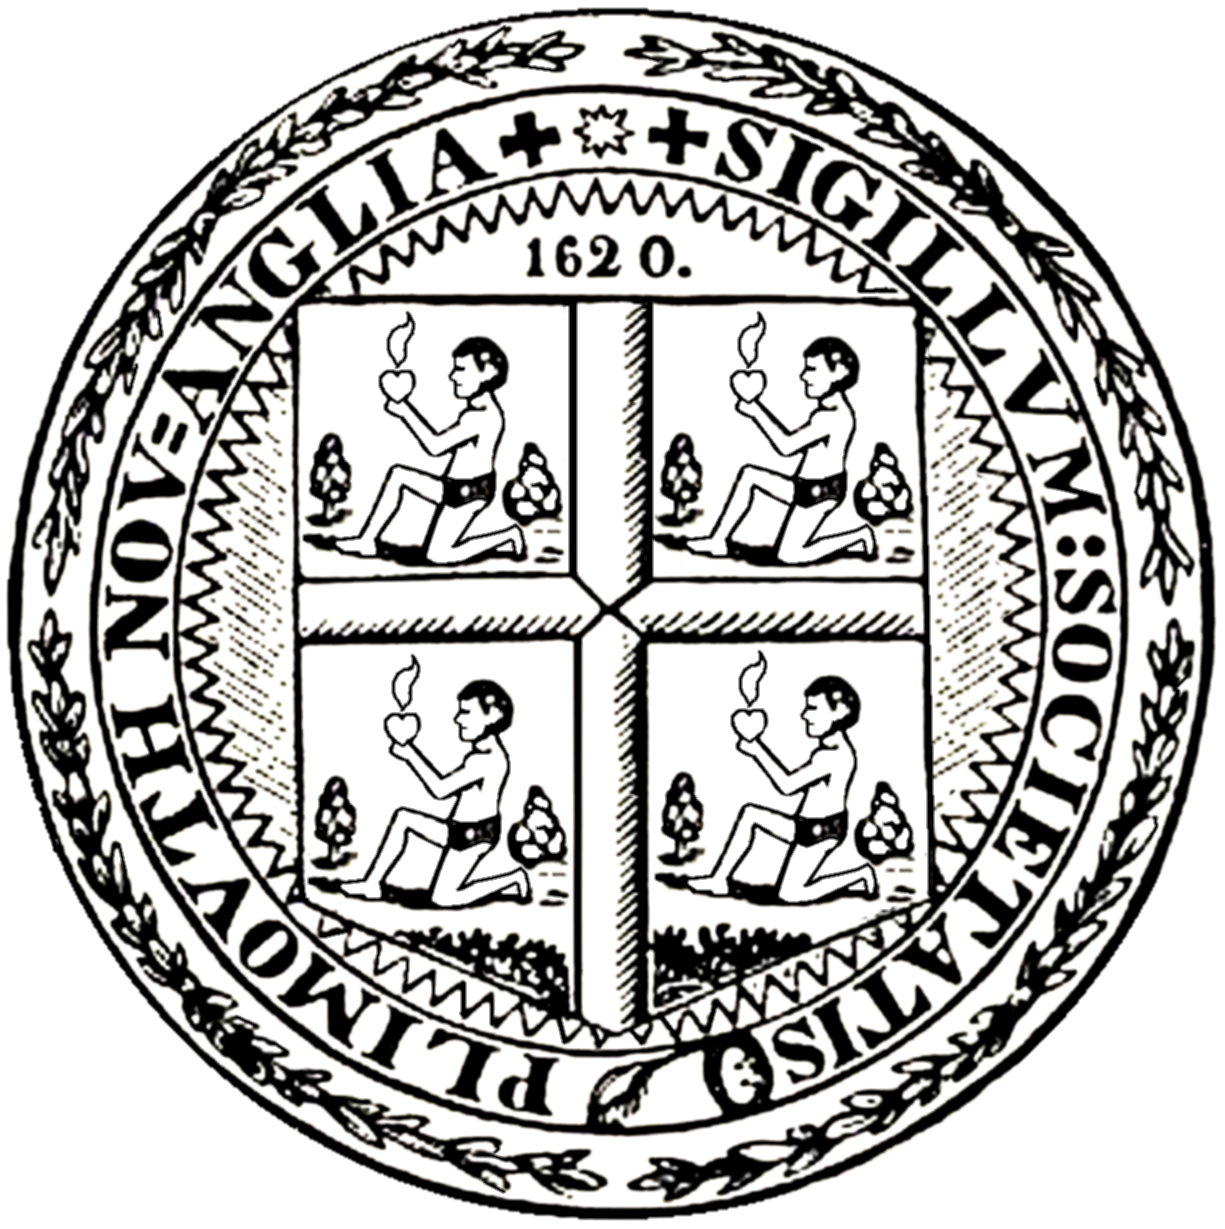 In drawing of the seal of Plymouth Massachusetts.